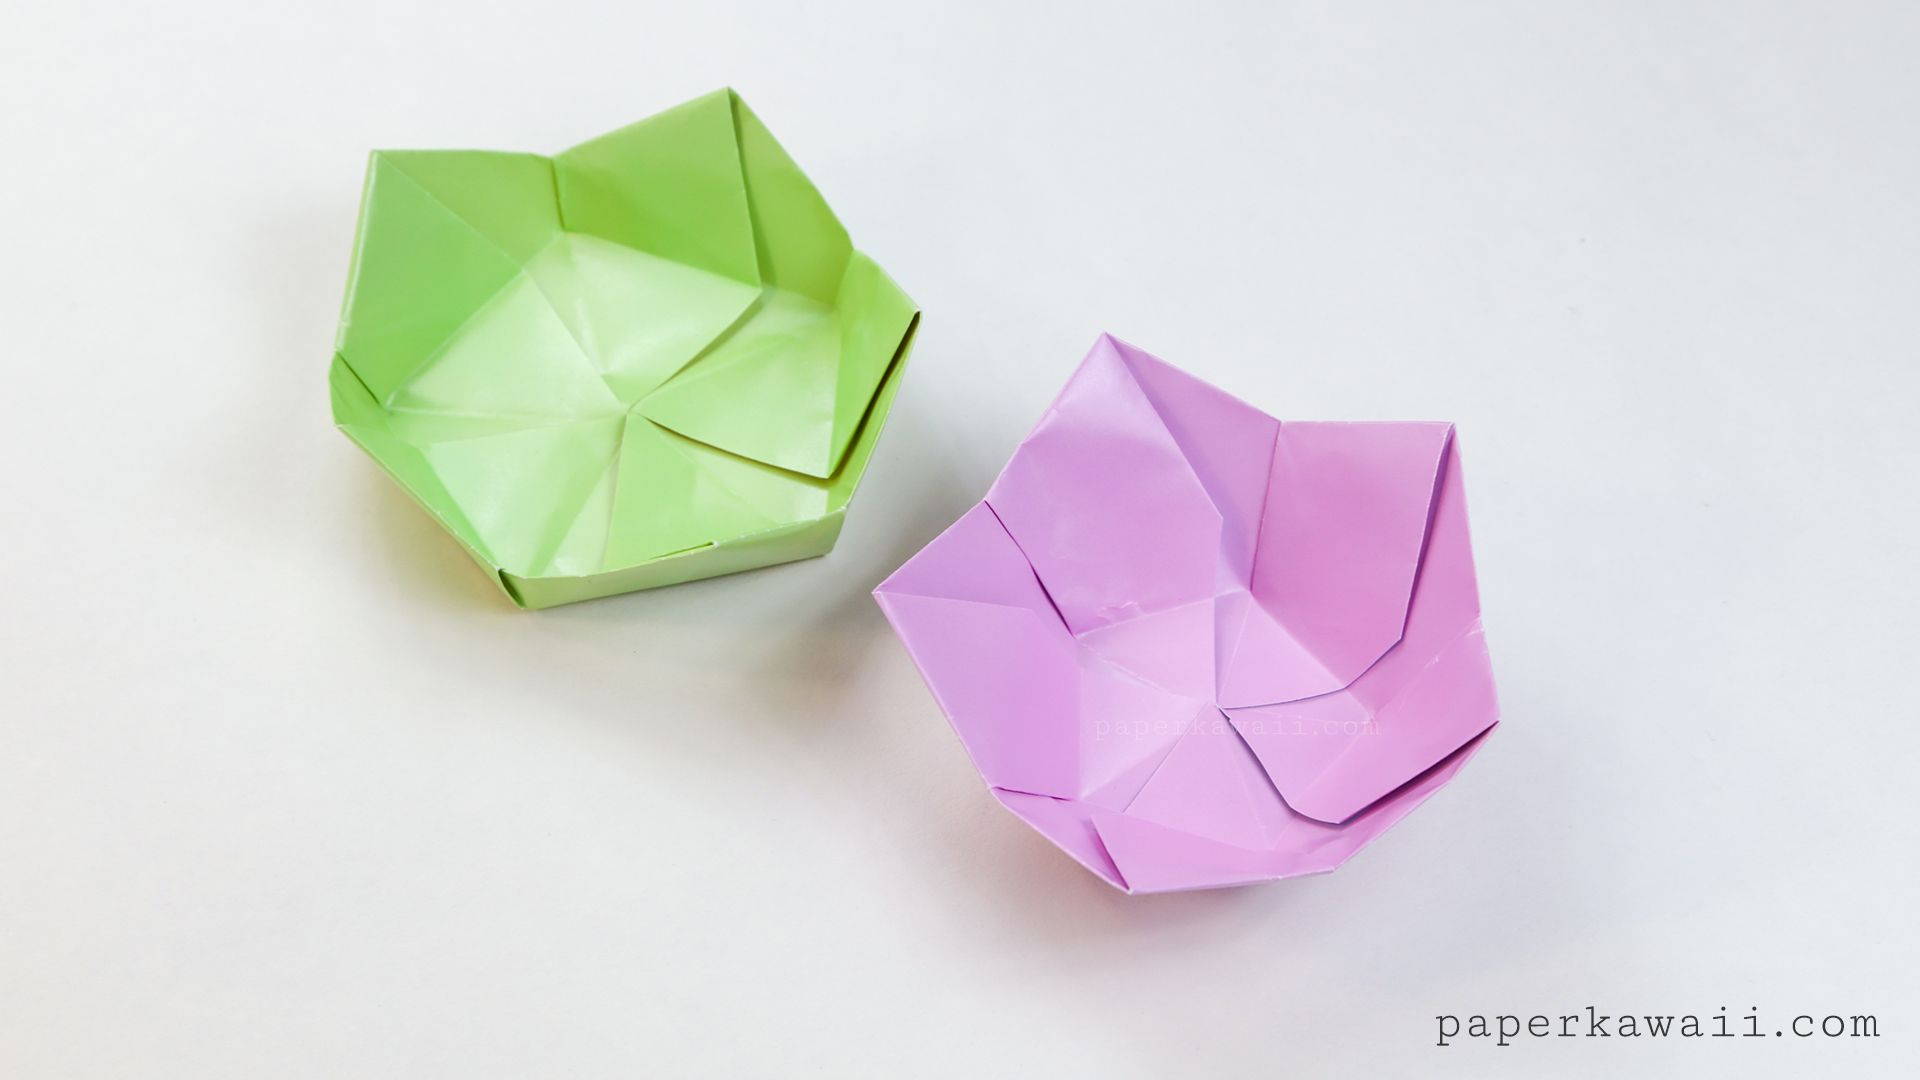 Origami flower bowl tutorial origami pinterest flower bowl video instructions for an origami flower bowl made from a pentagon by paper kawaii mightylinksfo